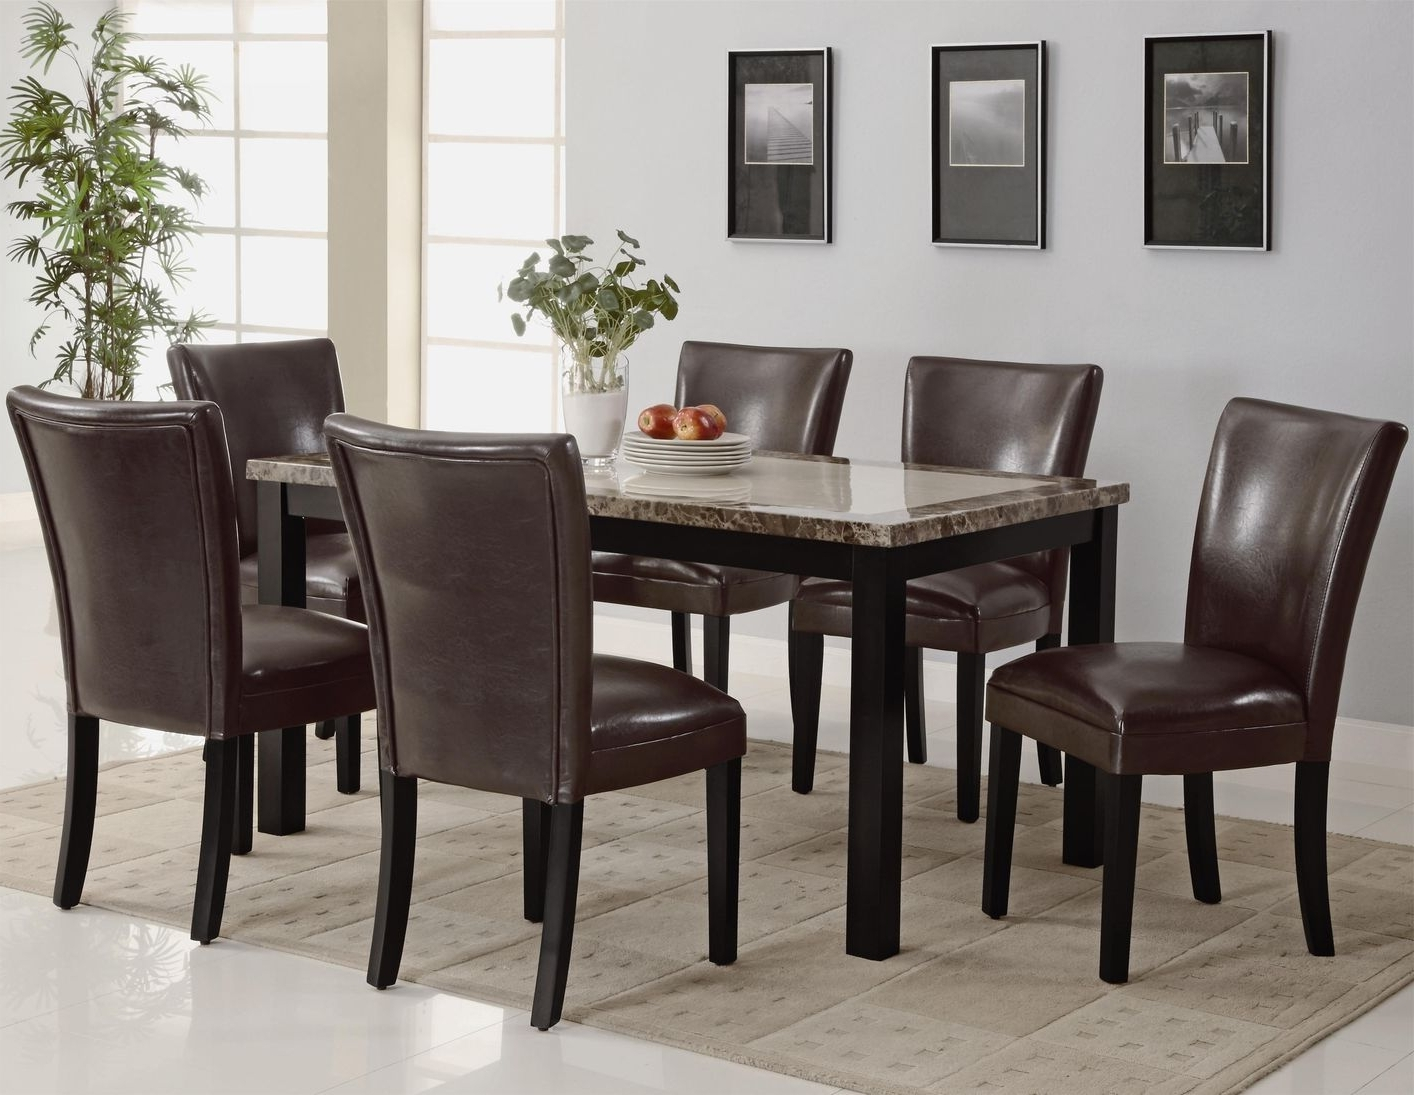 Carter Dark Brown Wood And Marble Dining Table Set – Steal A Sofa In Current Dark Brown Wood Dining Tables (Gallery 1 of 25)